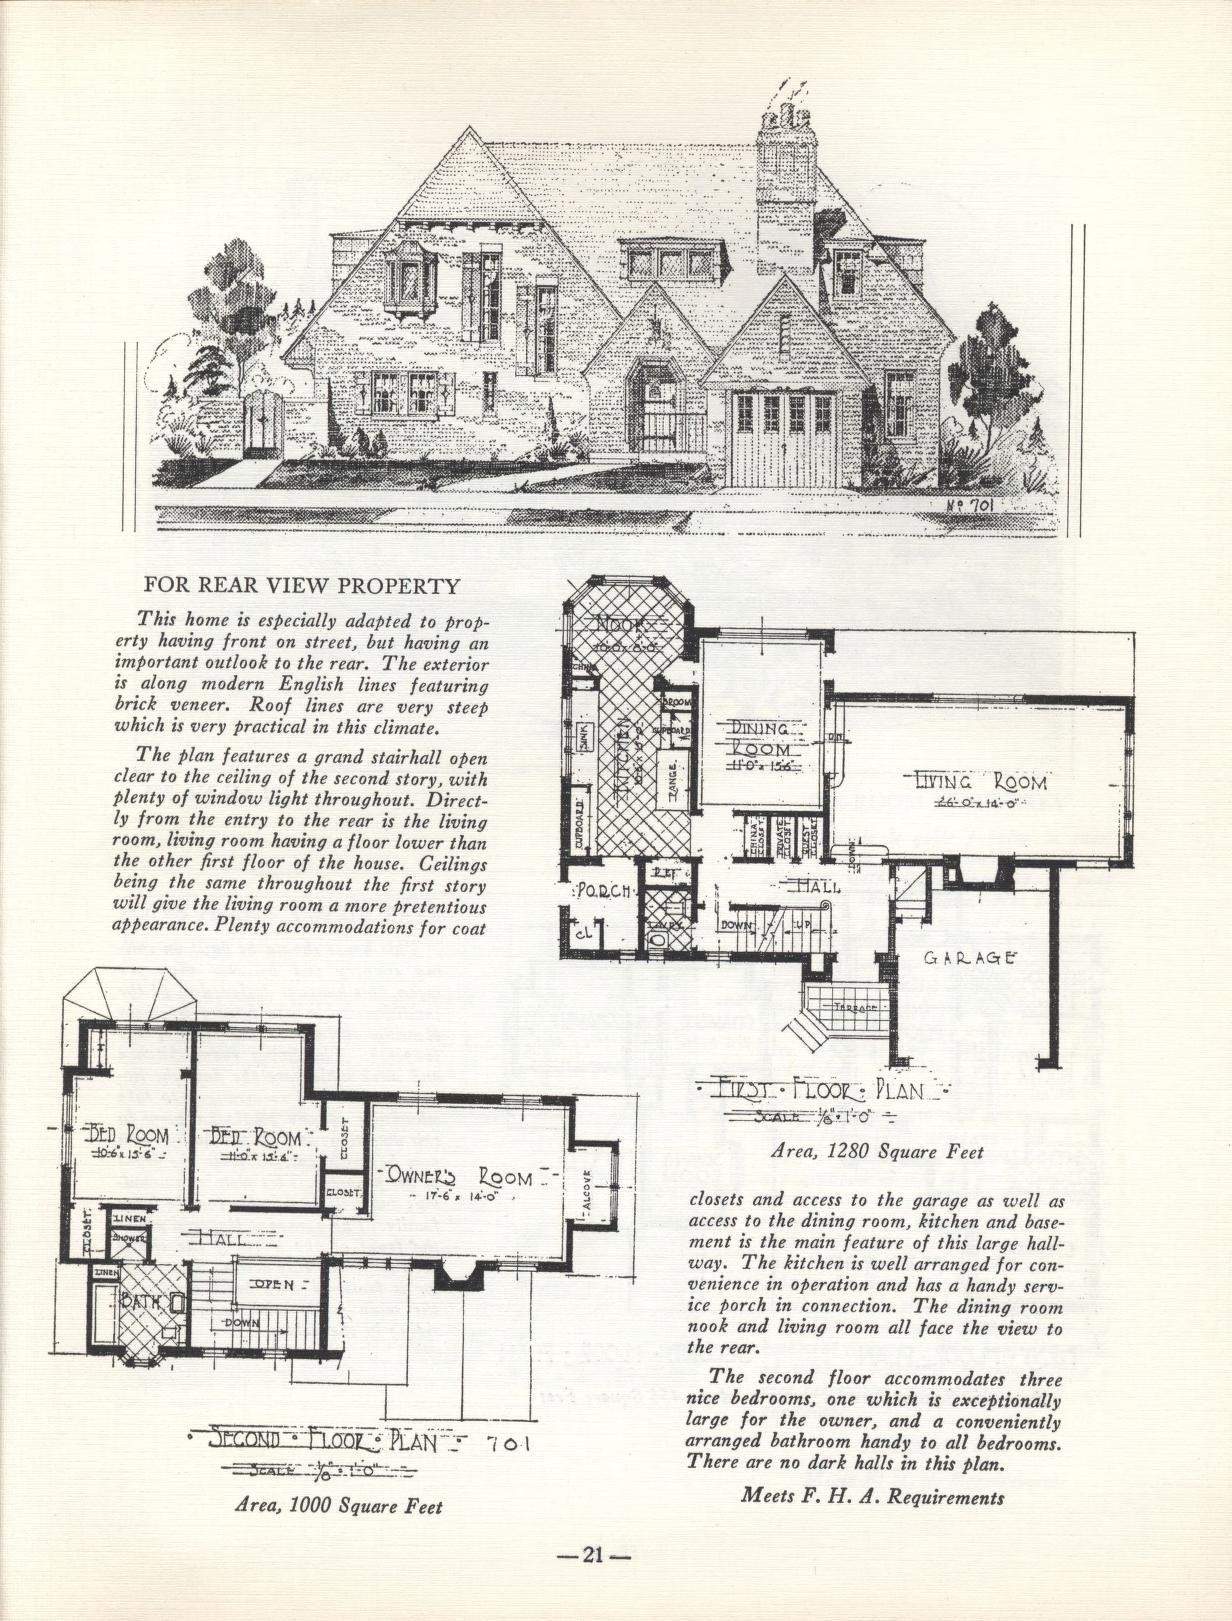 Pin by Judy-Lynne Peters on Houses in 2019 | Vintage house ... Peters House Floor Plan on mediterranean house plans, house design, house schematics, house exterior, colonial house plans, small house plans, craftsman house plans, big luxury house plans, country house plans, residential house plans, house blueprints, house layout, modern house plans, simple house plans, traditional house plans, duplex house plans, bungalow house plans, 2 story house plans, house site plan, luxury home plans,